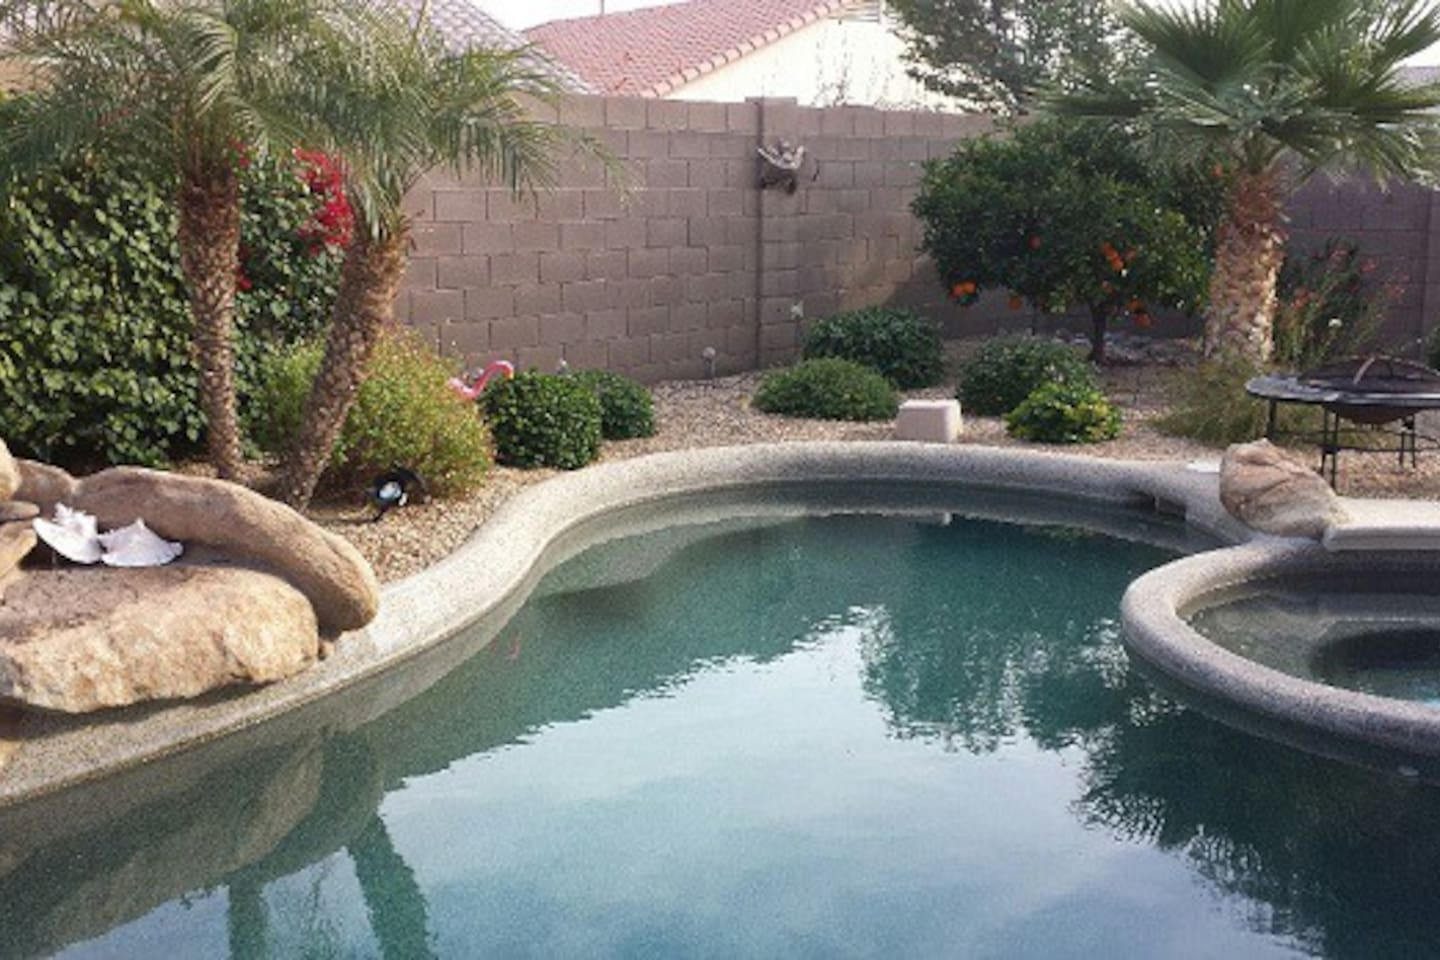 Backyard pool and hot tub.  Pool not heated in winter.